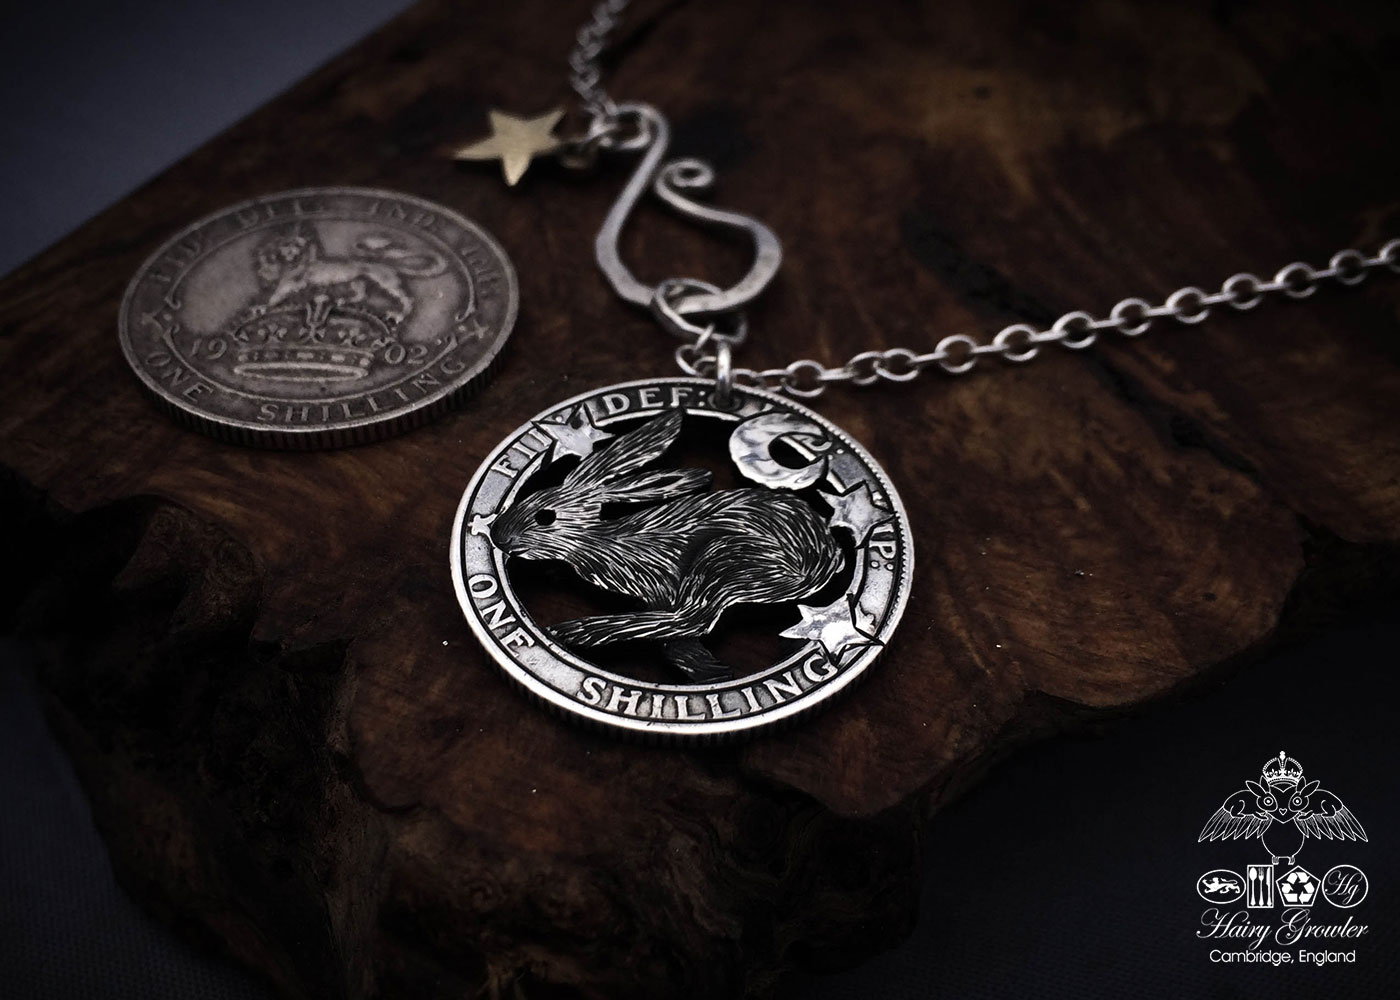 Handmade and recycled silver shilling The Silver Shilling collection. silver running wild hare necklace totally handcrafted and recycled from old sterling silver shilling coins. Designed and created by Hairy Growler Jewellery, Cambridge, UK. necklace